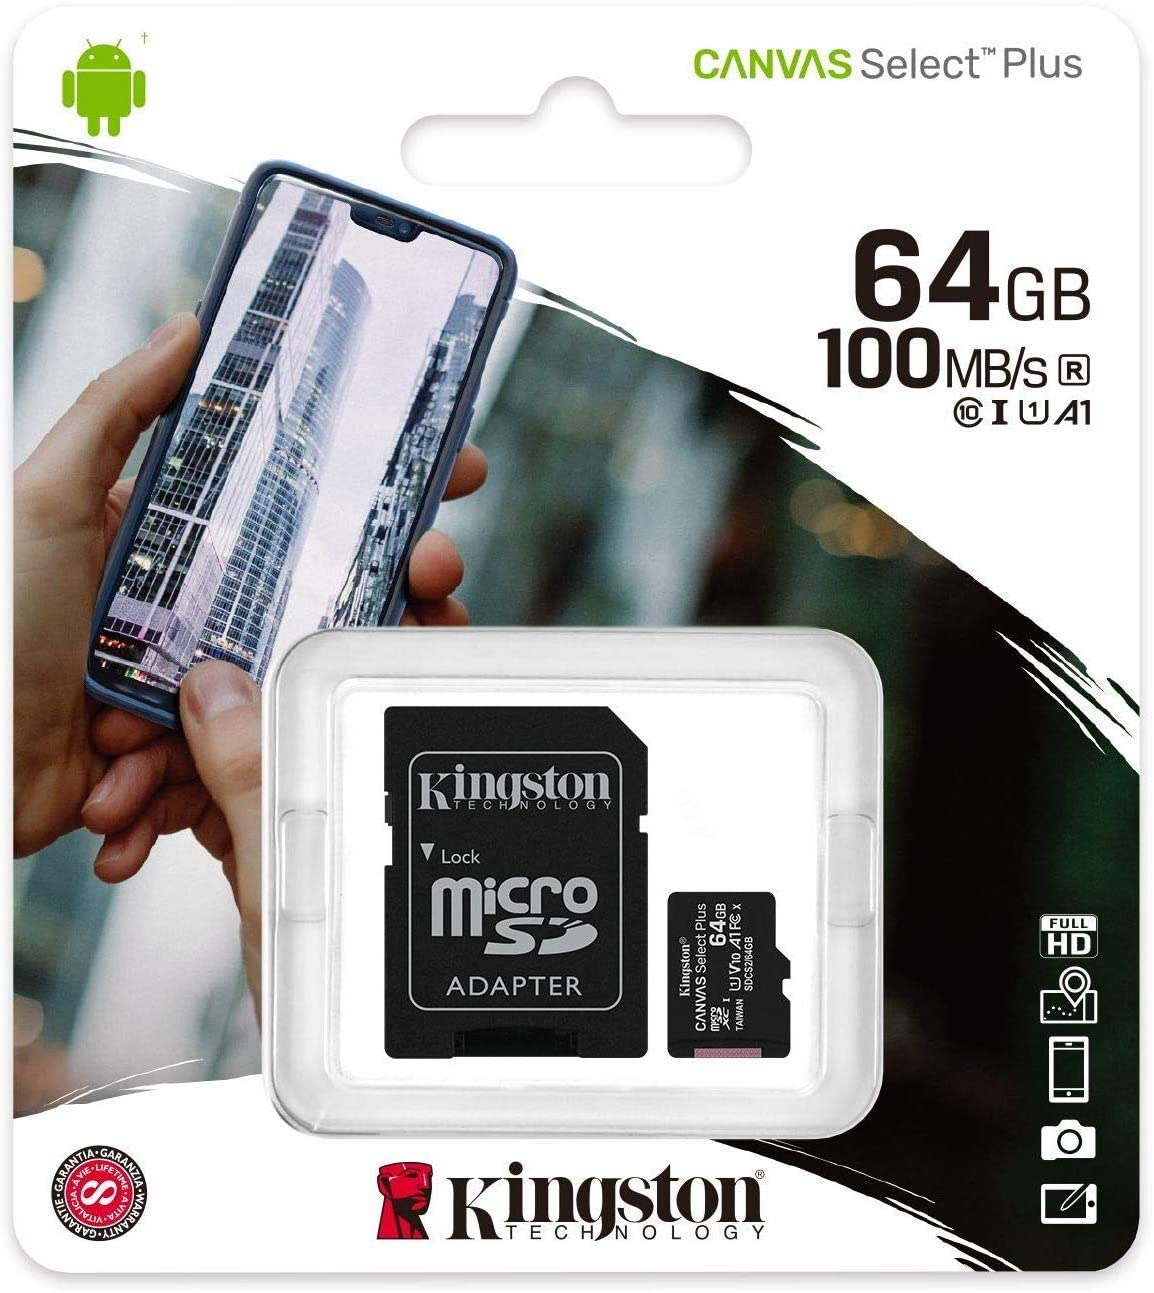 Kingston 128GB Microsoft Surface Pro MicroSDXC Canvas Select Plus Card Verified by SanFlash. 100MBs Works with Kingston 2017